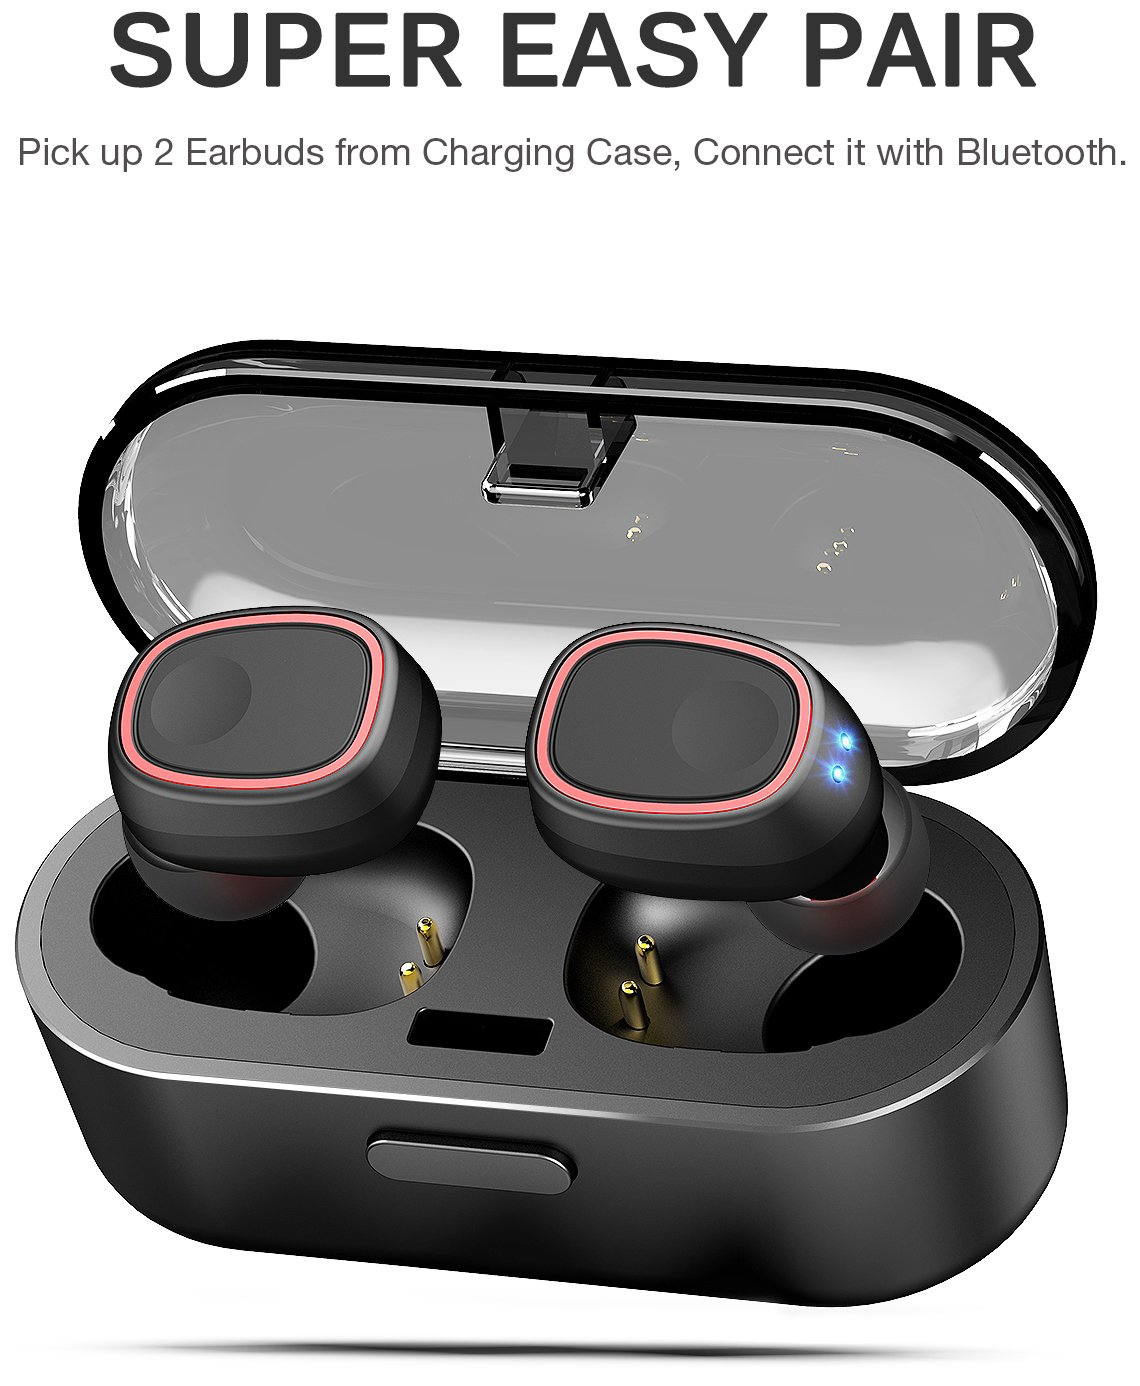 TOZO-T8-True-Wireless-Stereo-Headphones-TWS-Bluetooth-in-Ear-Earbuds-with-Charging-Case-Built-in-Mic-Headset-Premium-Sound-with-Bass-for-Running-Sport-Super-Easy-Pair